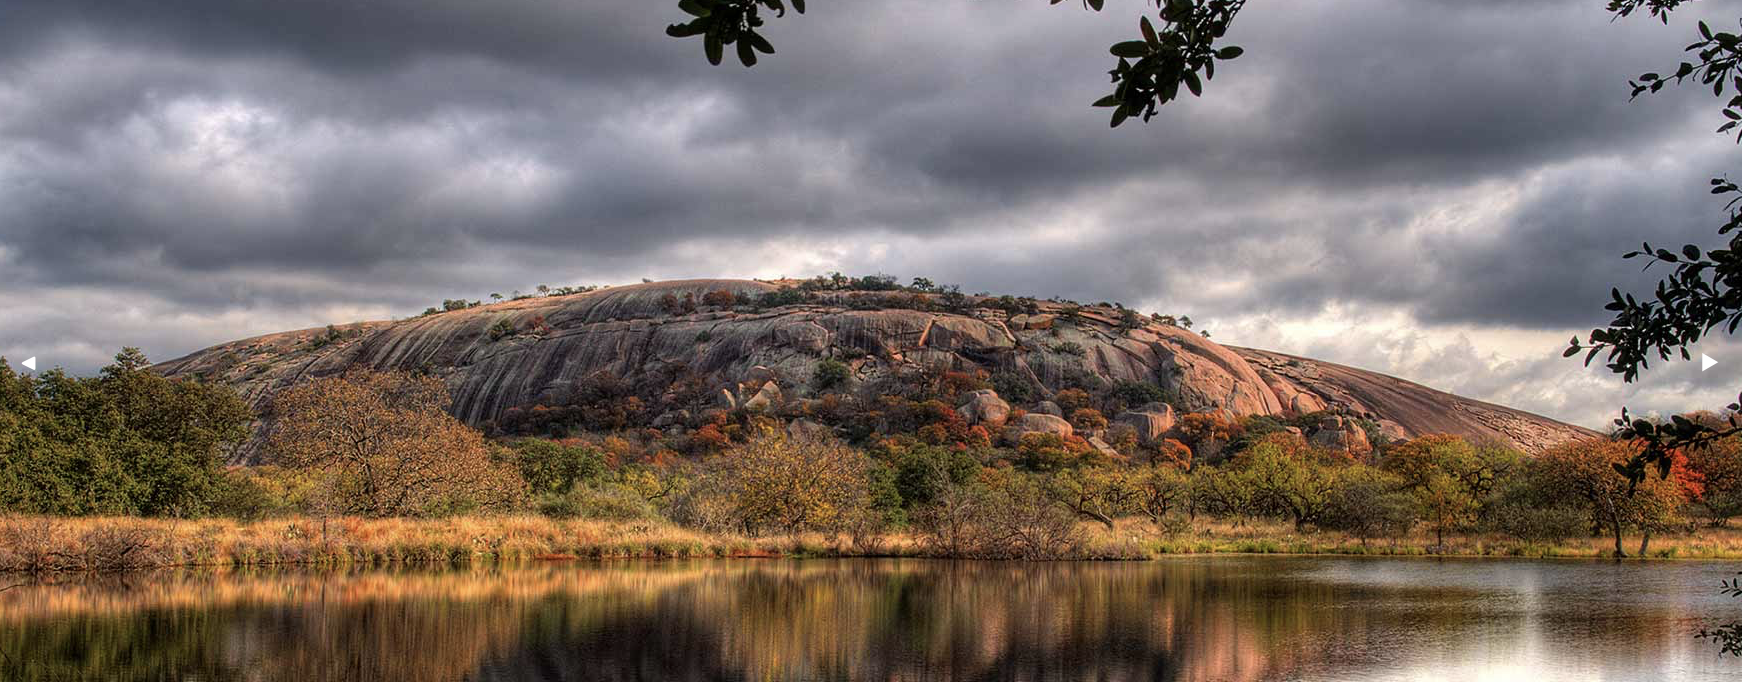 """<h3>Enchanted Rock State Natural Area</h3>""""> </div> <div class="""